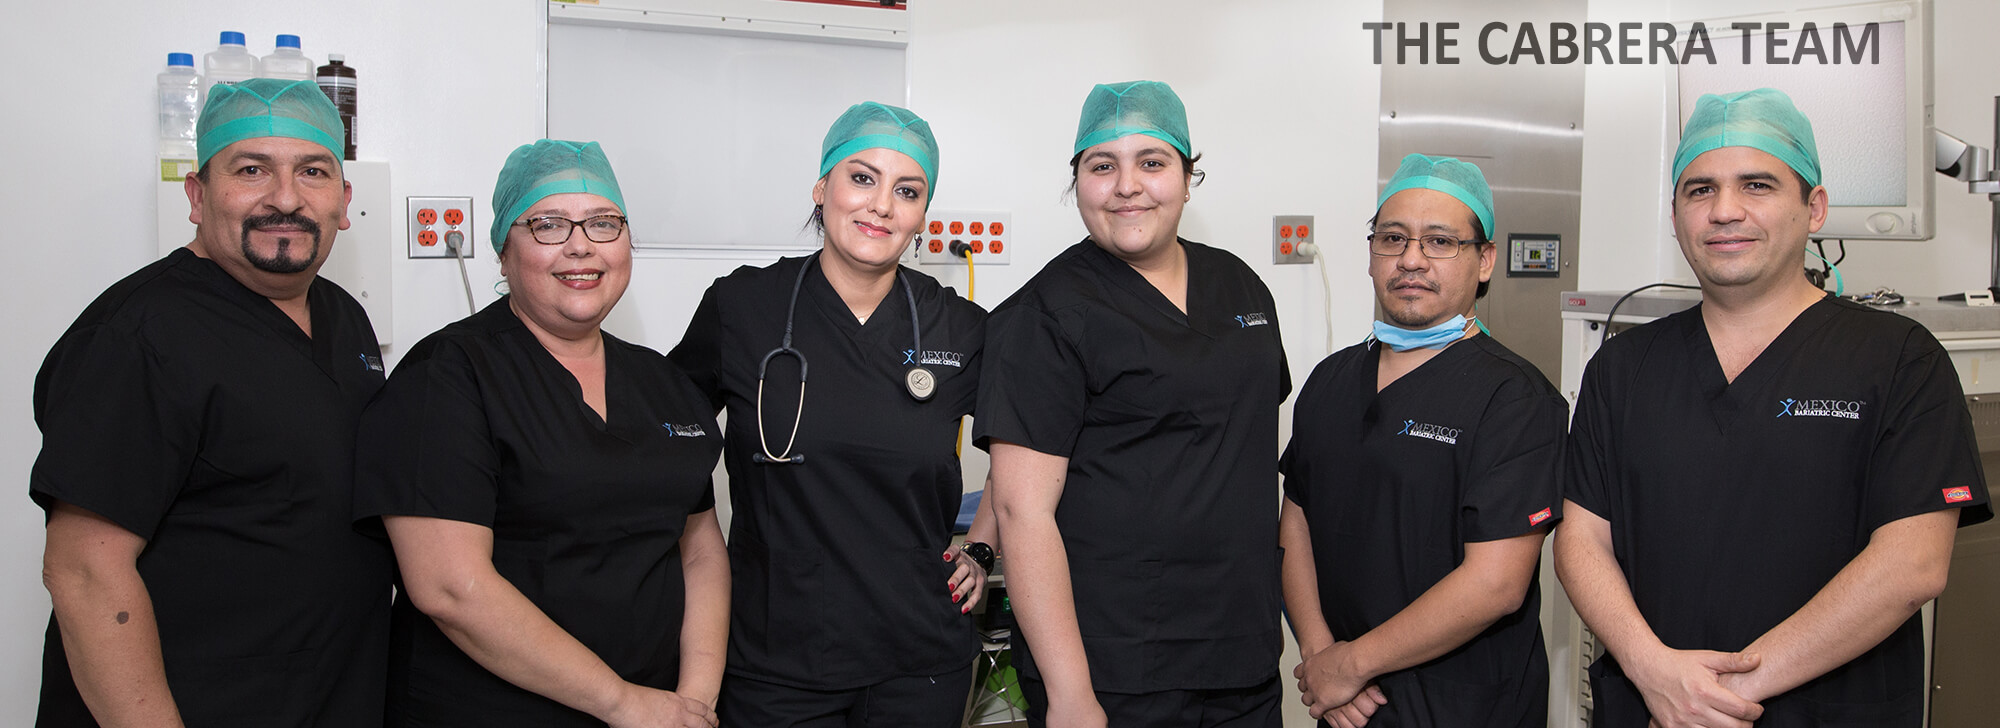 Dr. Ismael Cabrera - Staff and Doctors Team